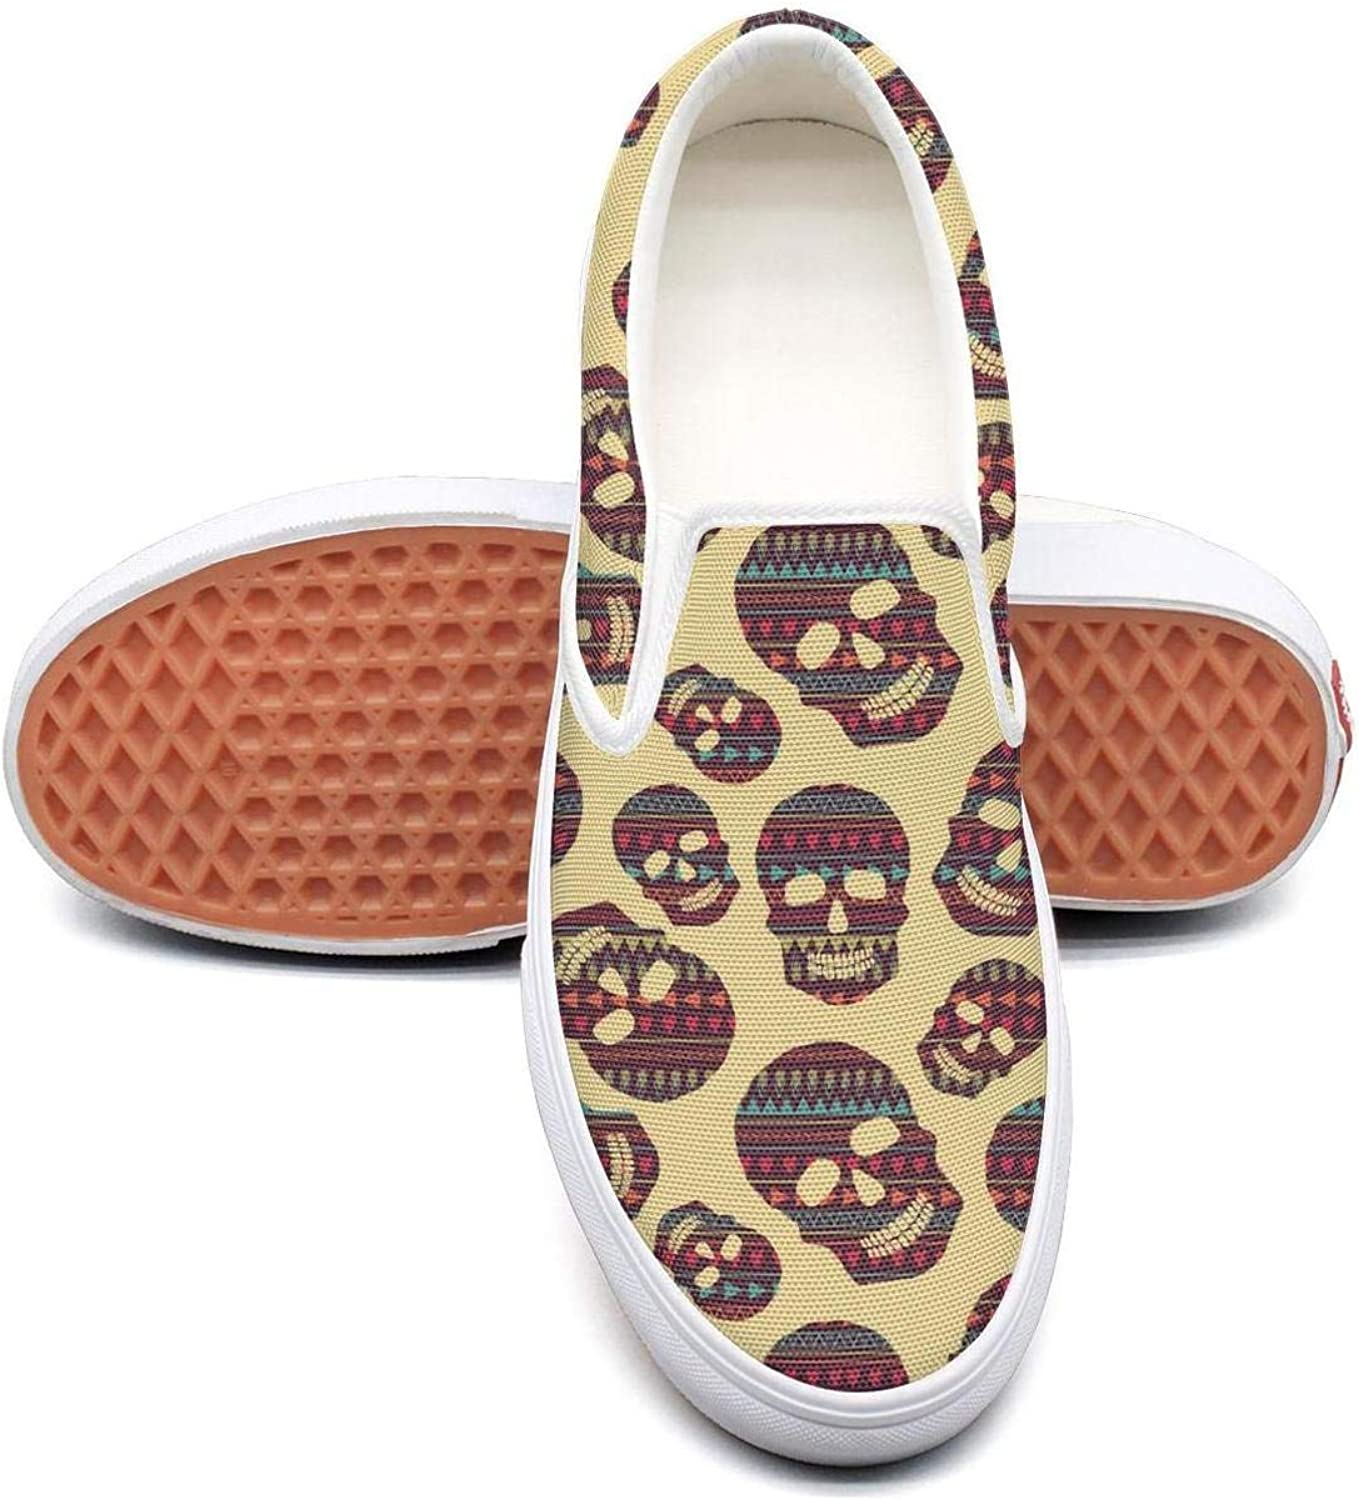 Colour Skulls and Heart Slip On Superior Comfort Loafers Canvas shoes for Women Fashion